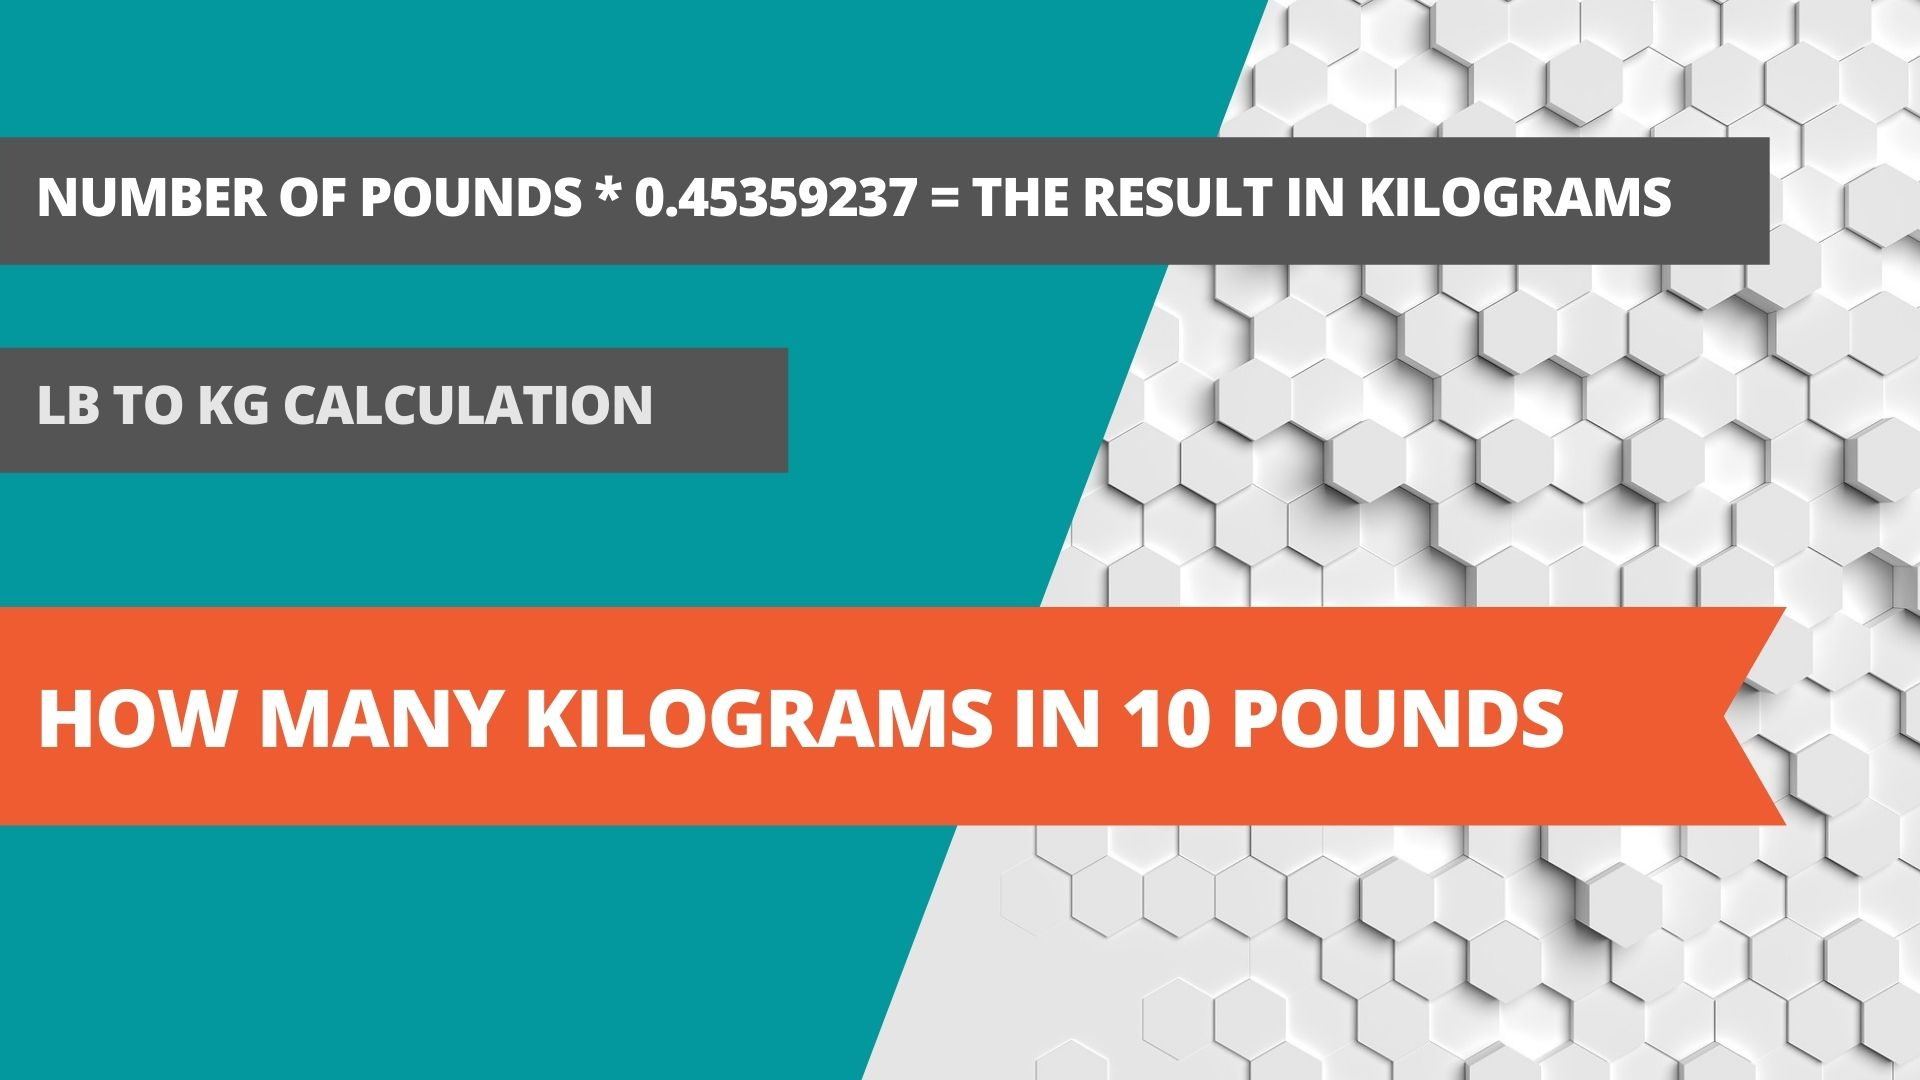 How many kilograms in 10 pounds